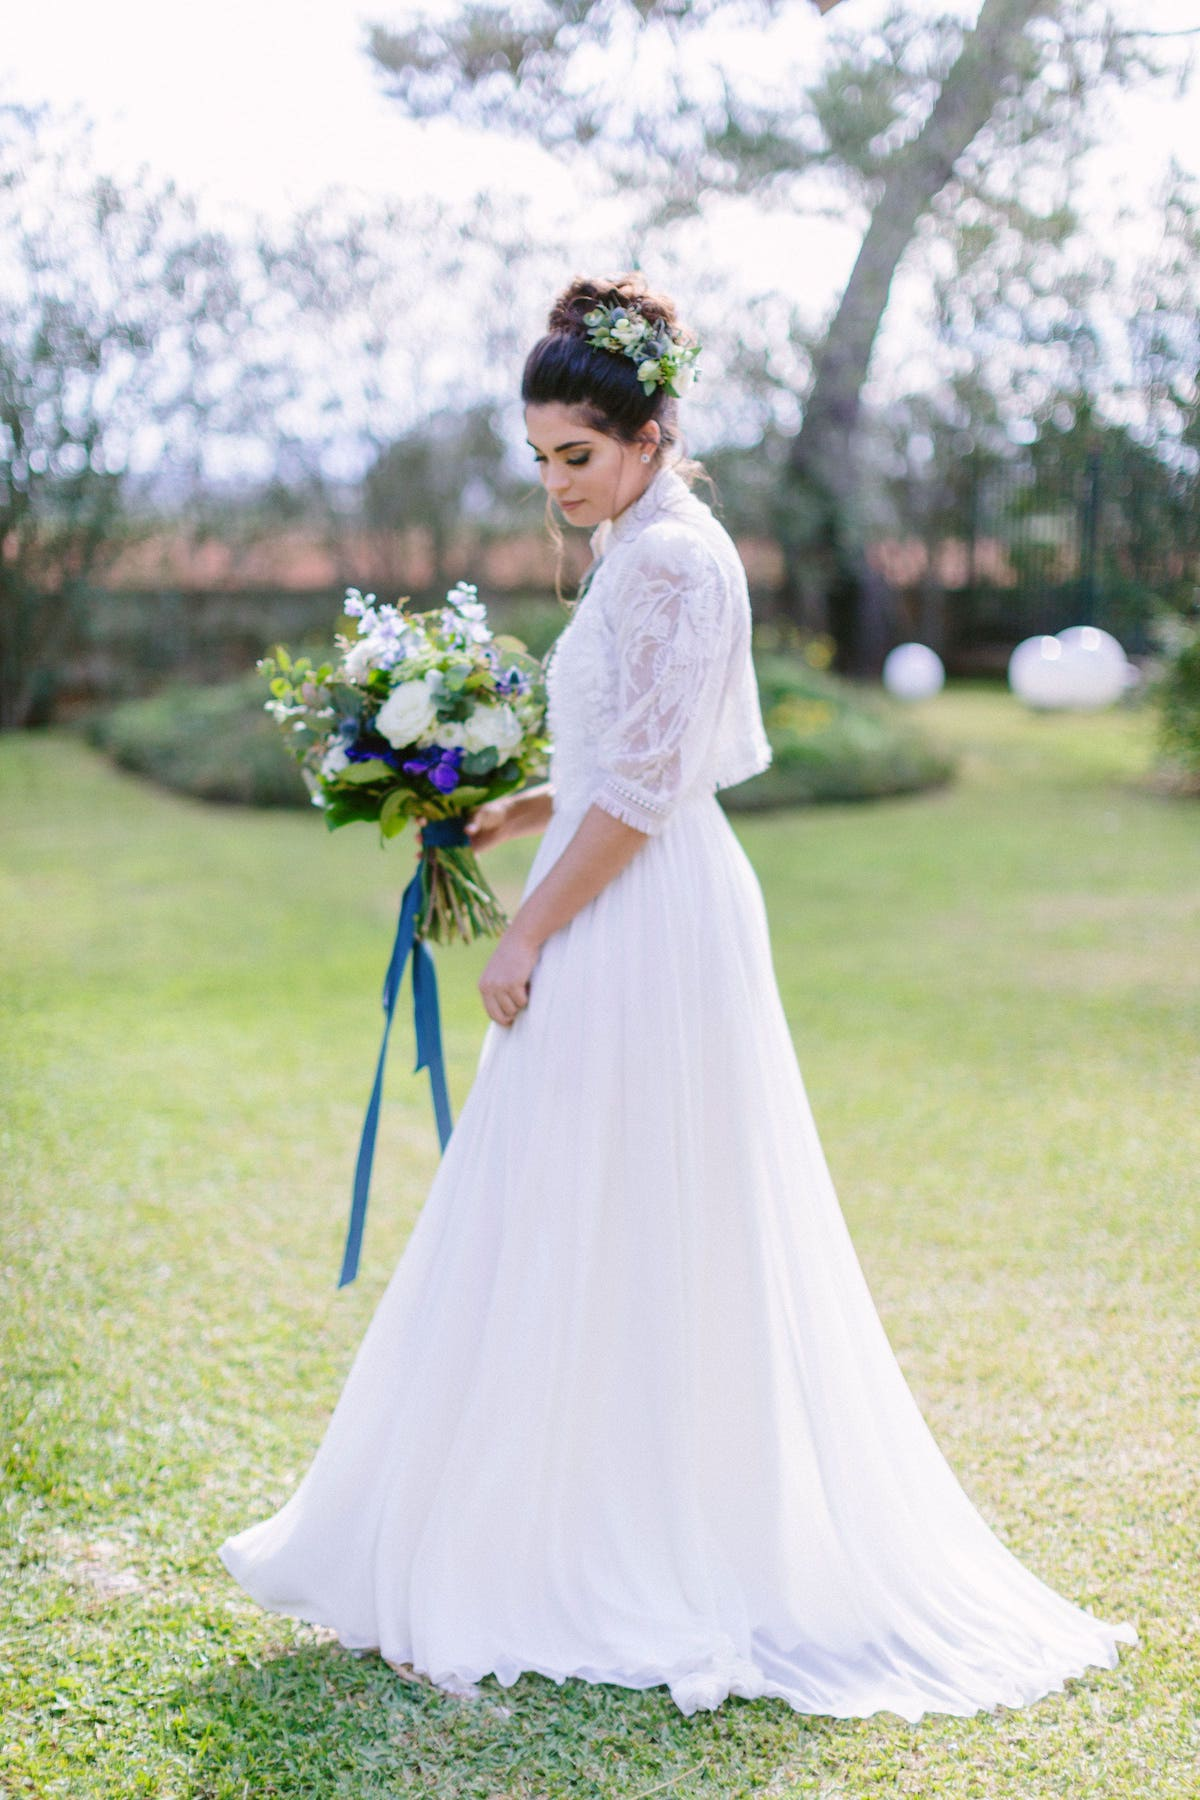 bride bouquet and wedding dress inspiration for wedding in Mallorca